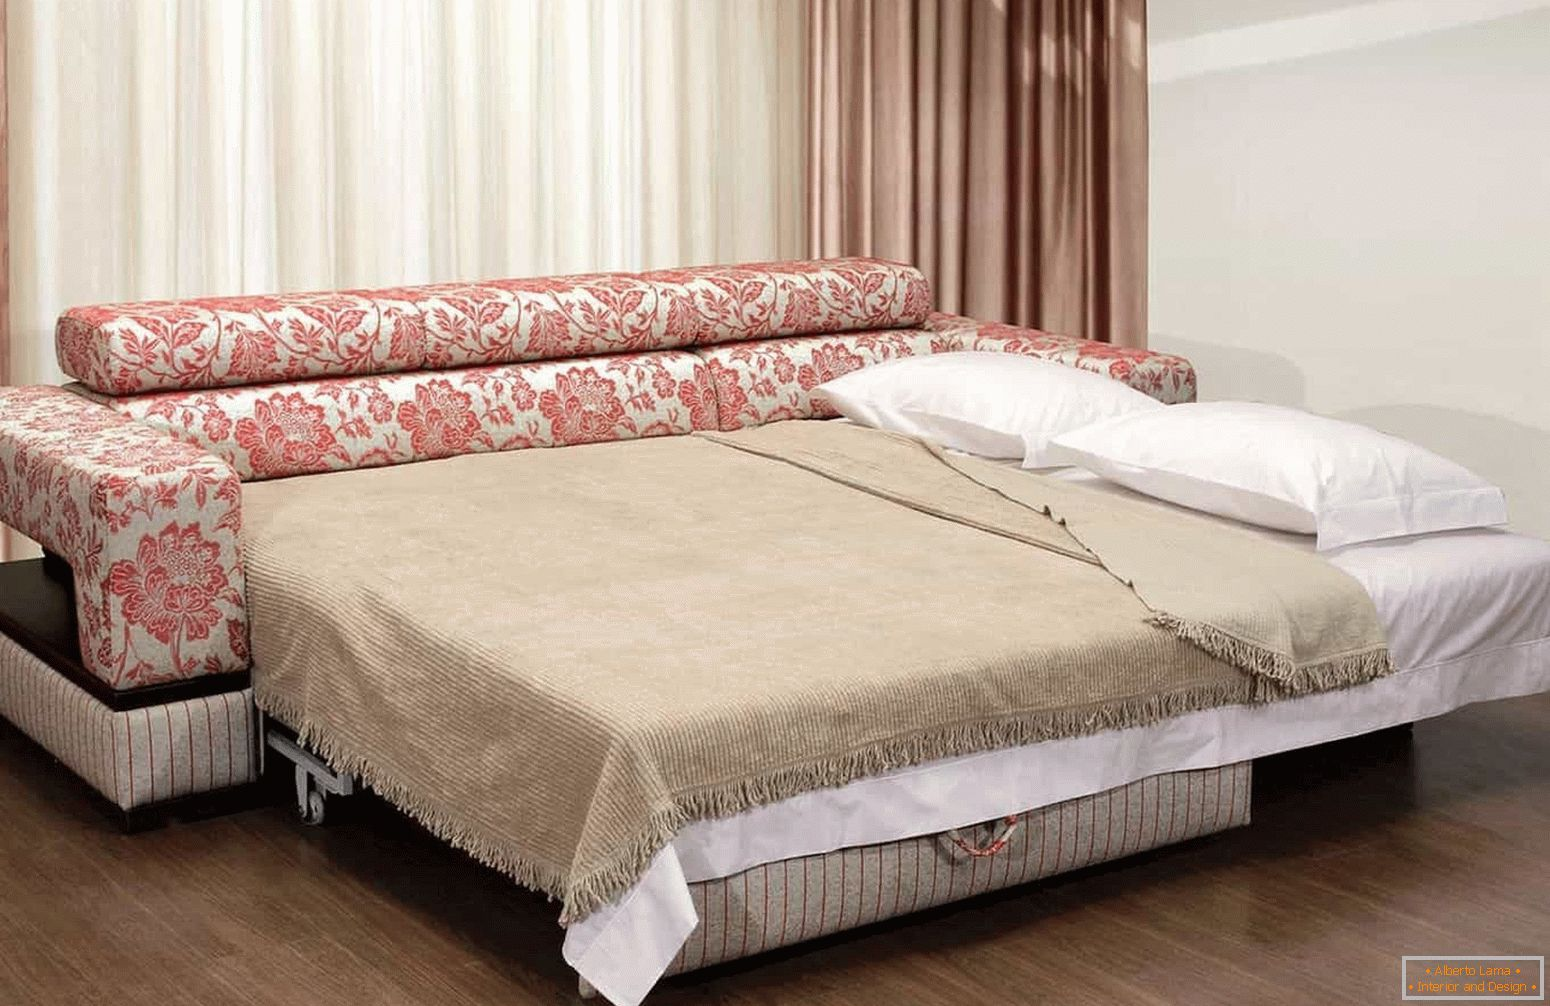 Sofa eurobook with orthopedic mattress - decoration of the living room, childrens room, bedroom